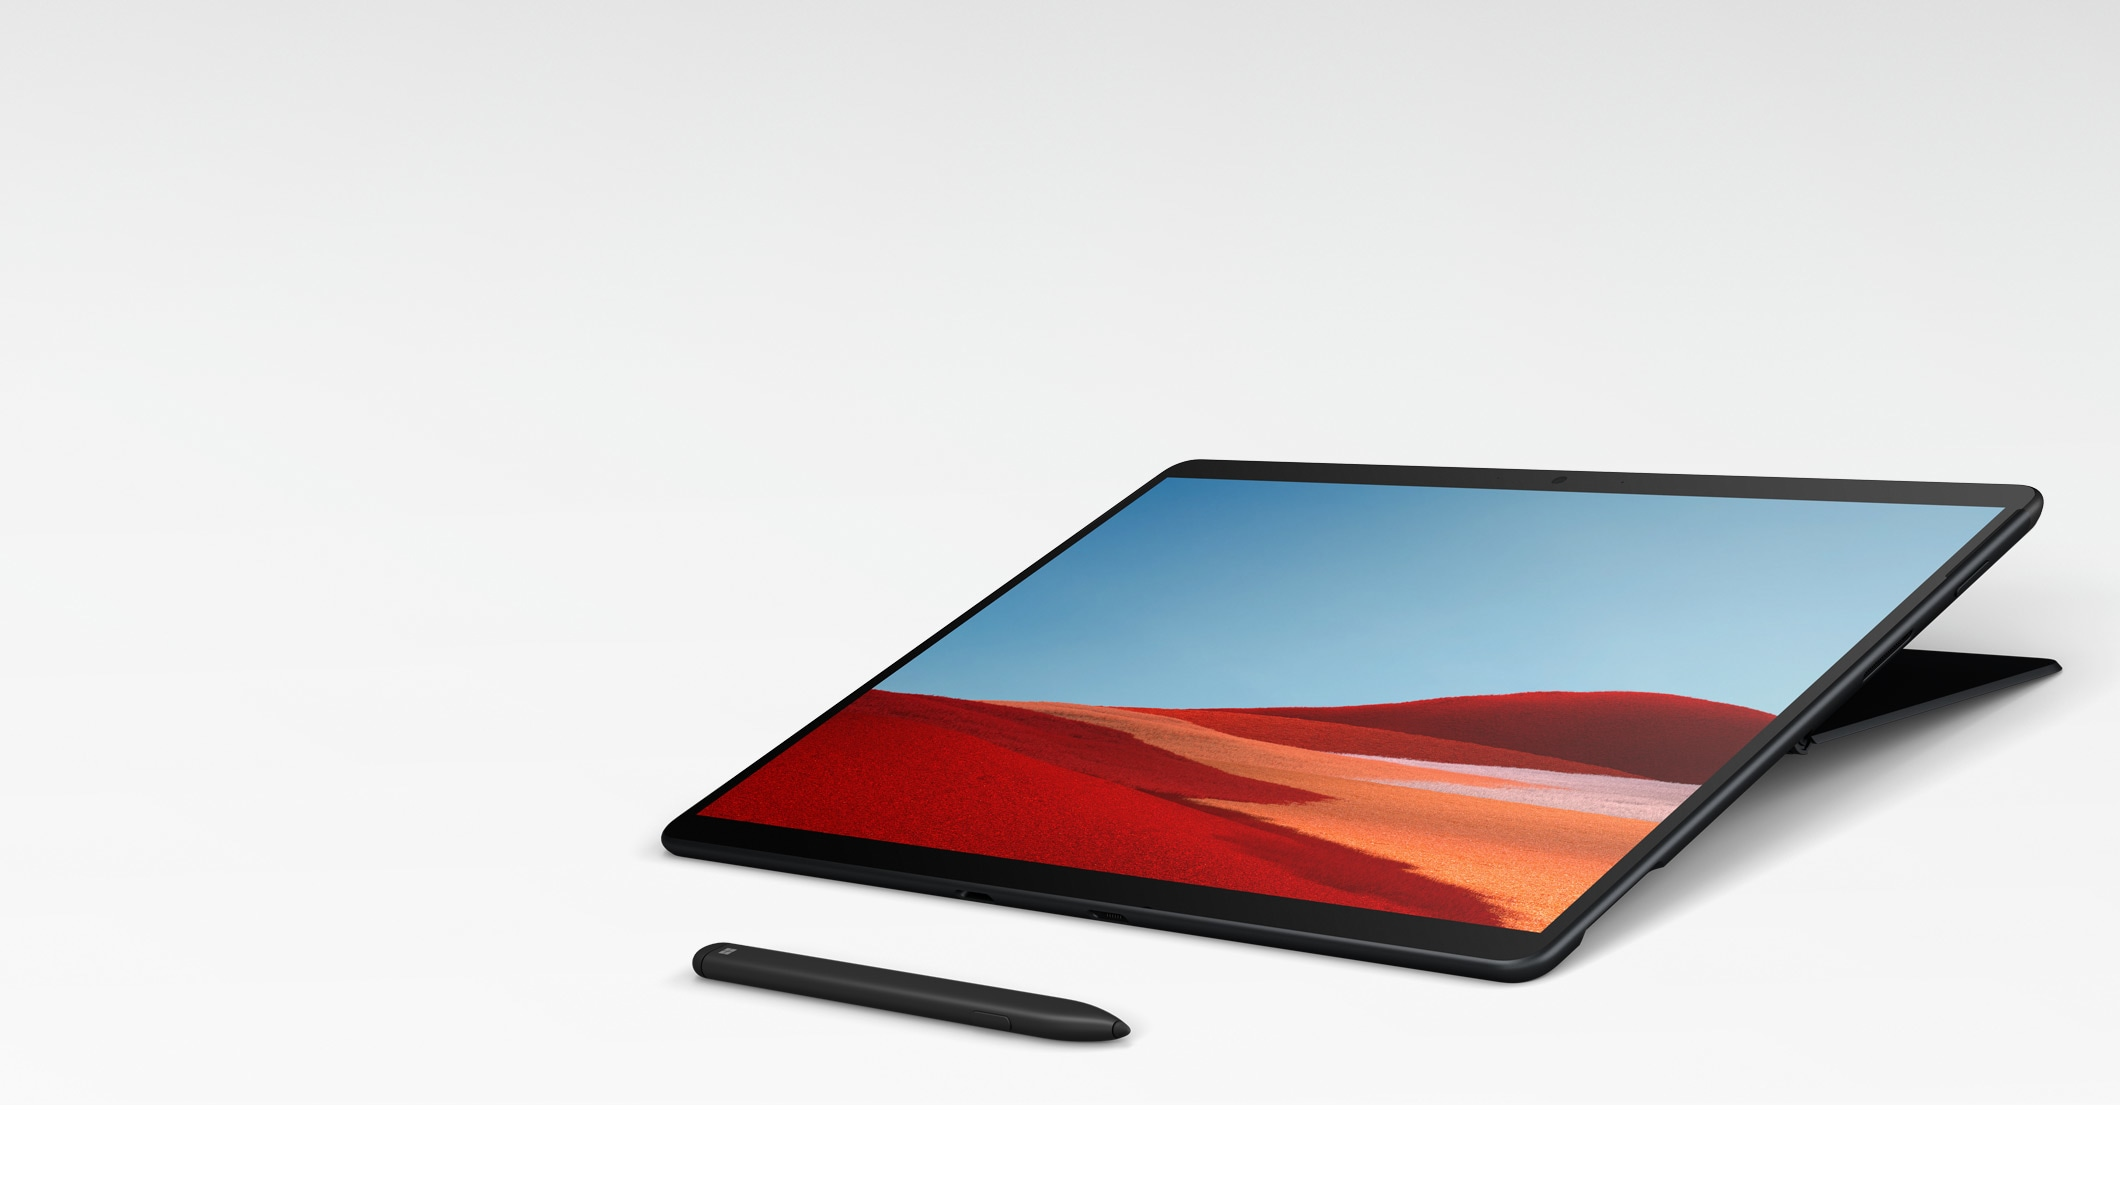 Surface Pro X in Studio Mode with Surface Slim Pen